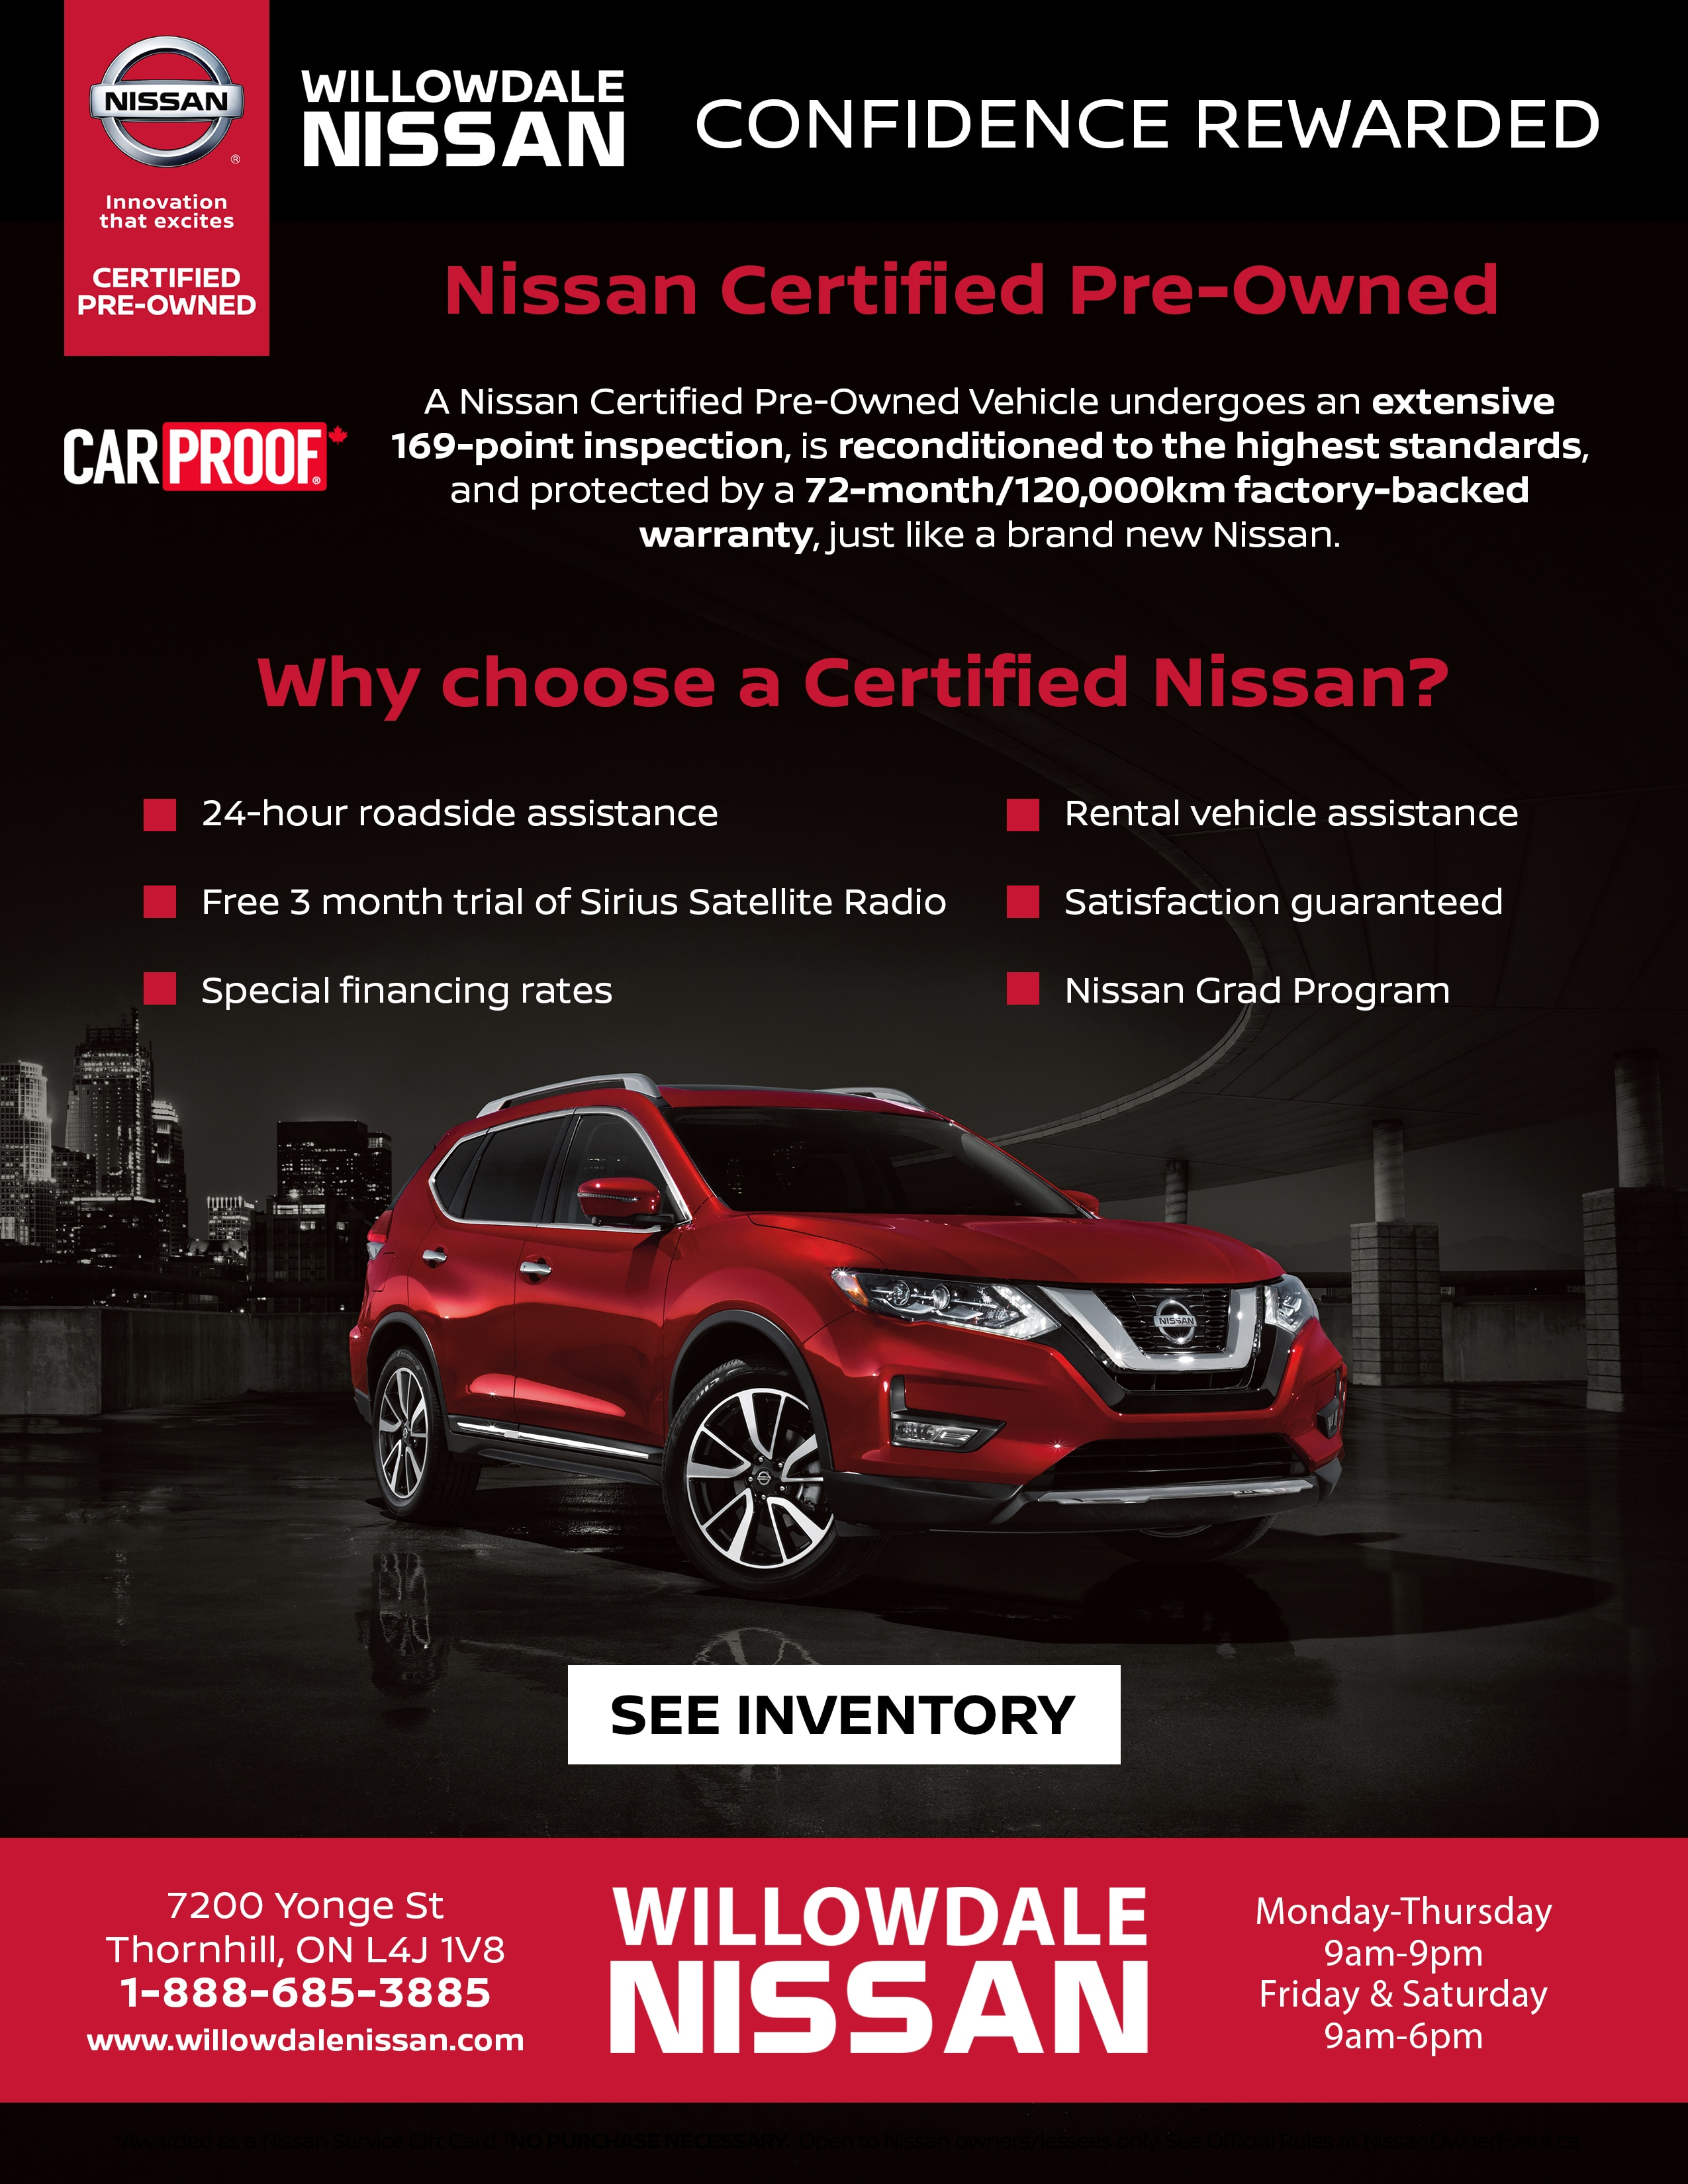 previous pause crown ca dealership nissan pre redding in owned certified next new